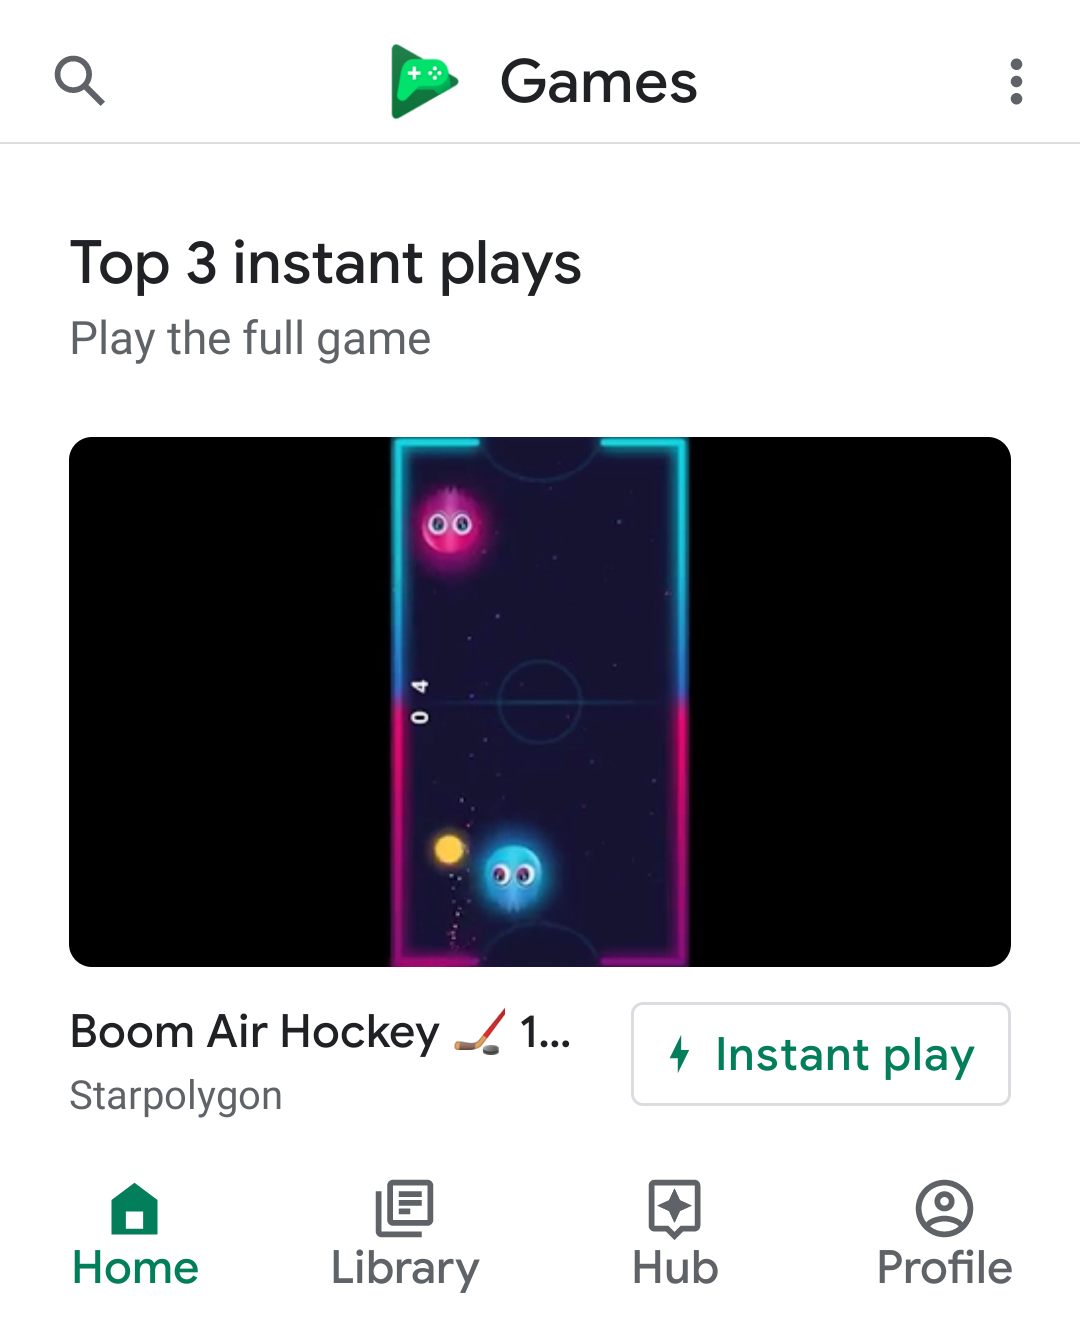 The 'Instant play' button appears in the Google Play Games app